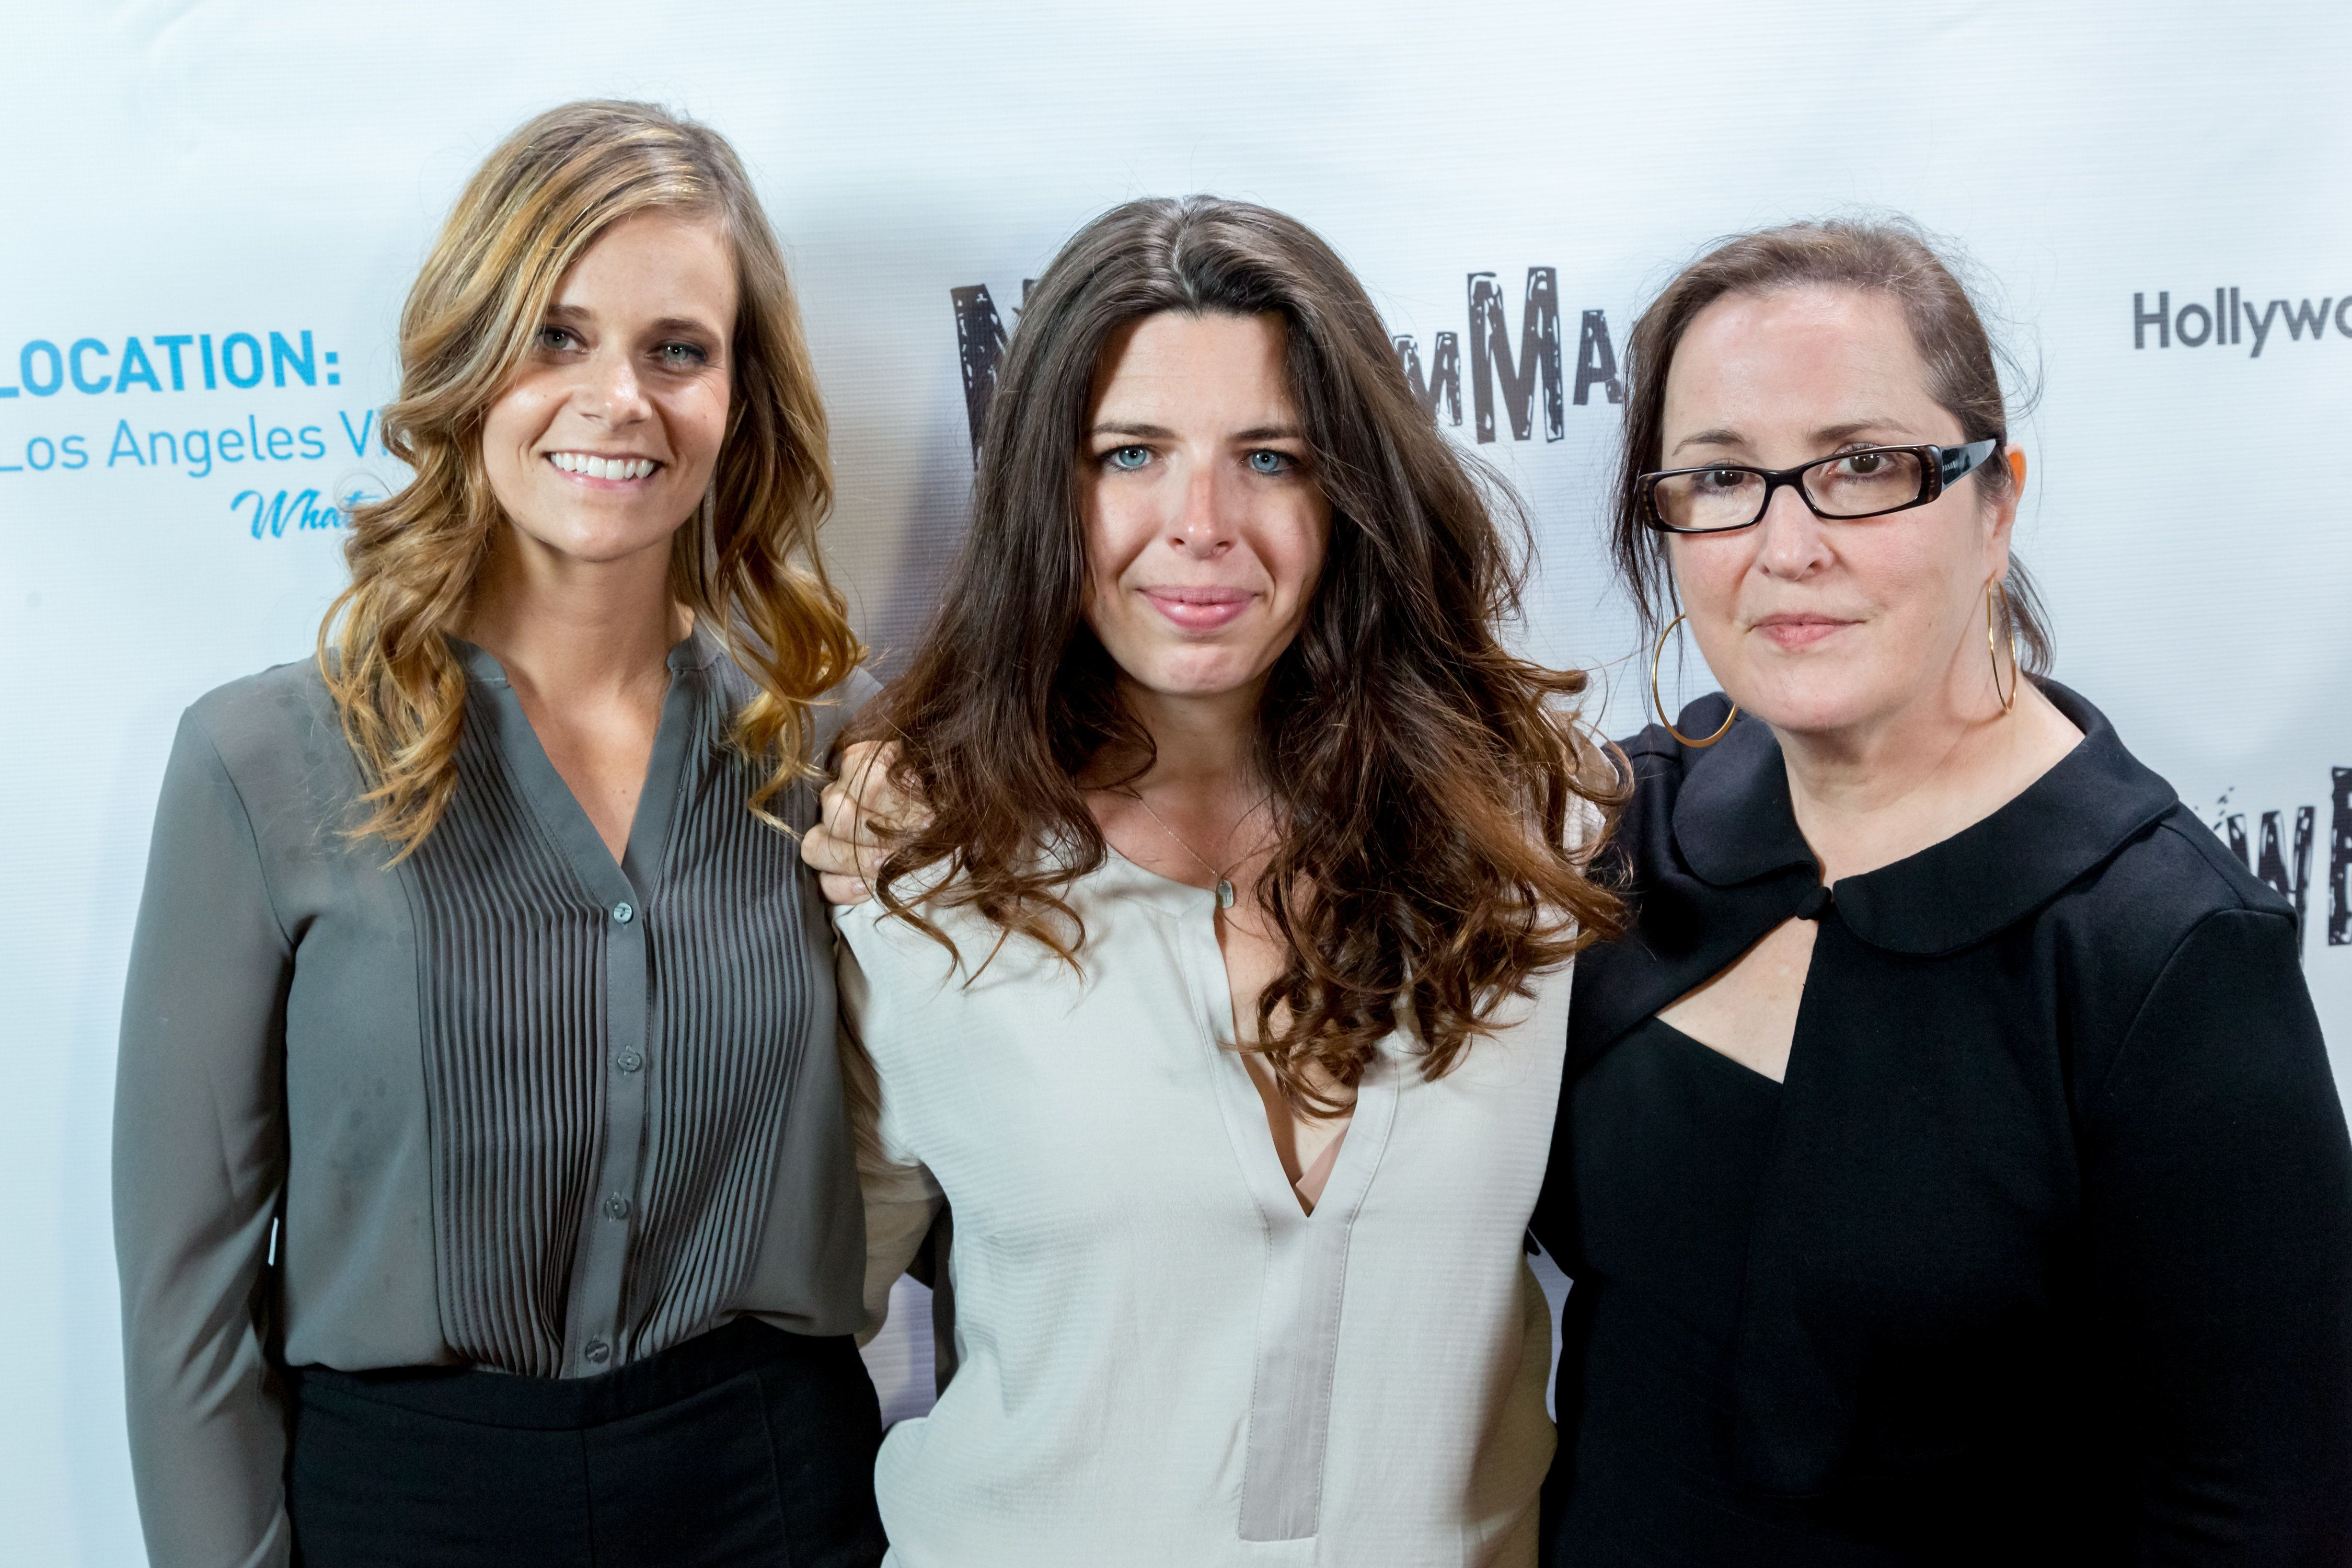 LOS ANGELES, CA - OCTOBER 08:  (L-R) Actors Heather Turman, Heather Matarazzo and Jillian Armenante arrive at the NewFilmmakers Los Angeles On Location 2016 Film Festival at Hollywood Center Studios on October 8, 2016 in Los Angeles, California.  (Photo by Greg Doherty/Getty Images)